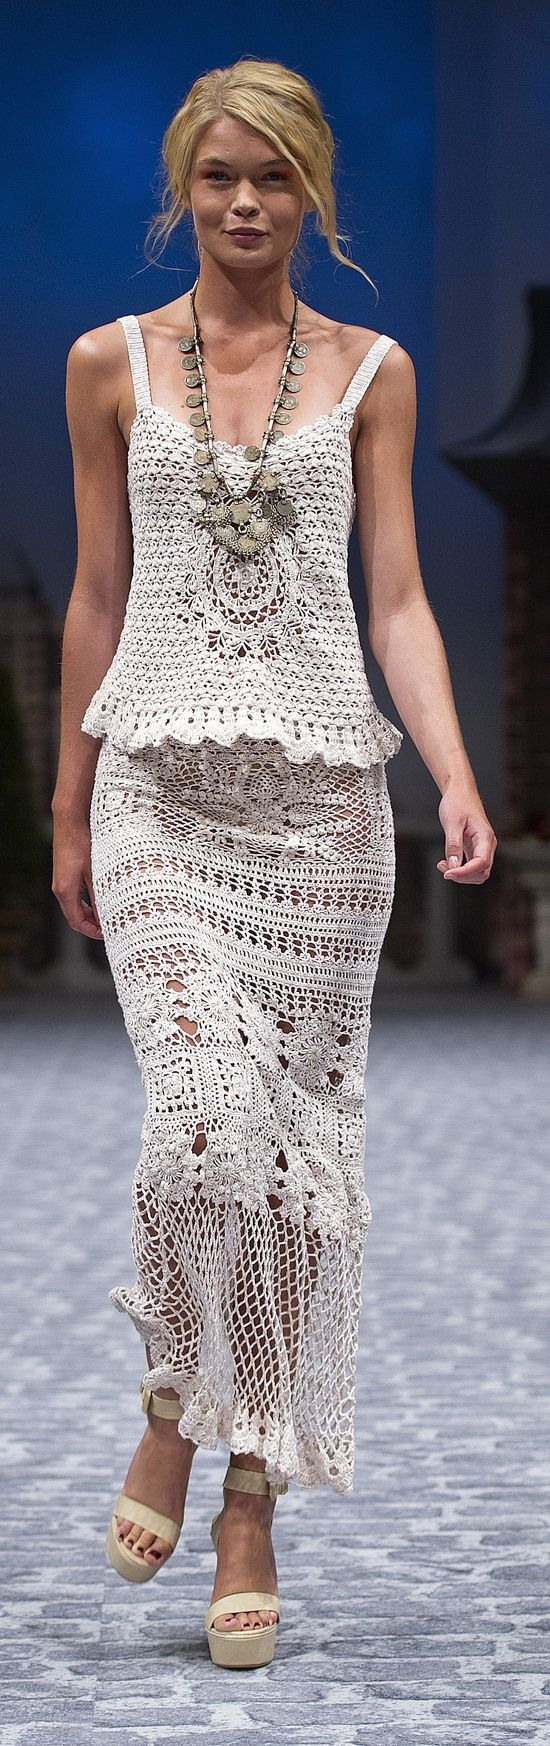 Crochet on the Runway by Eva